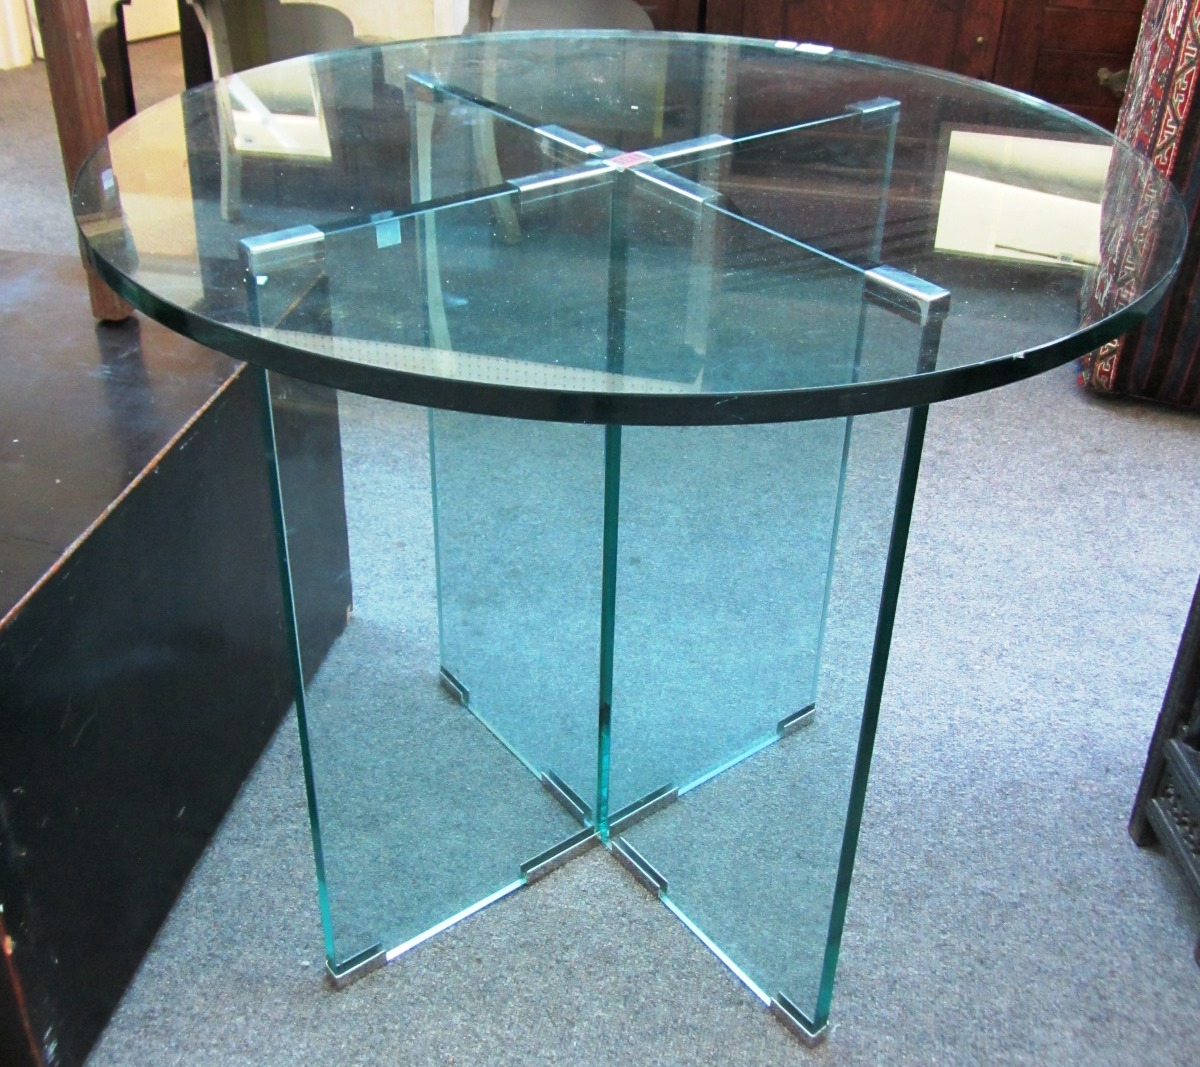 a 20th century glass table